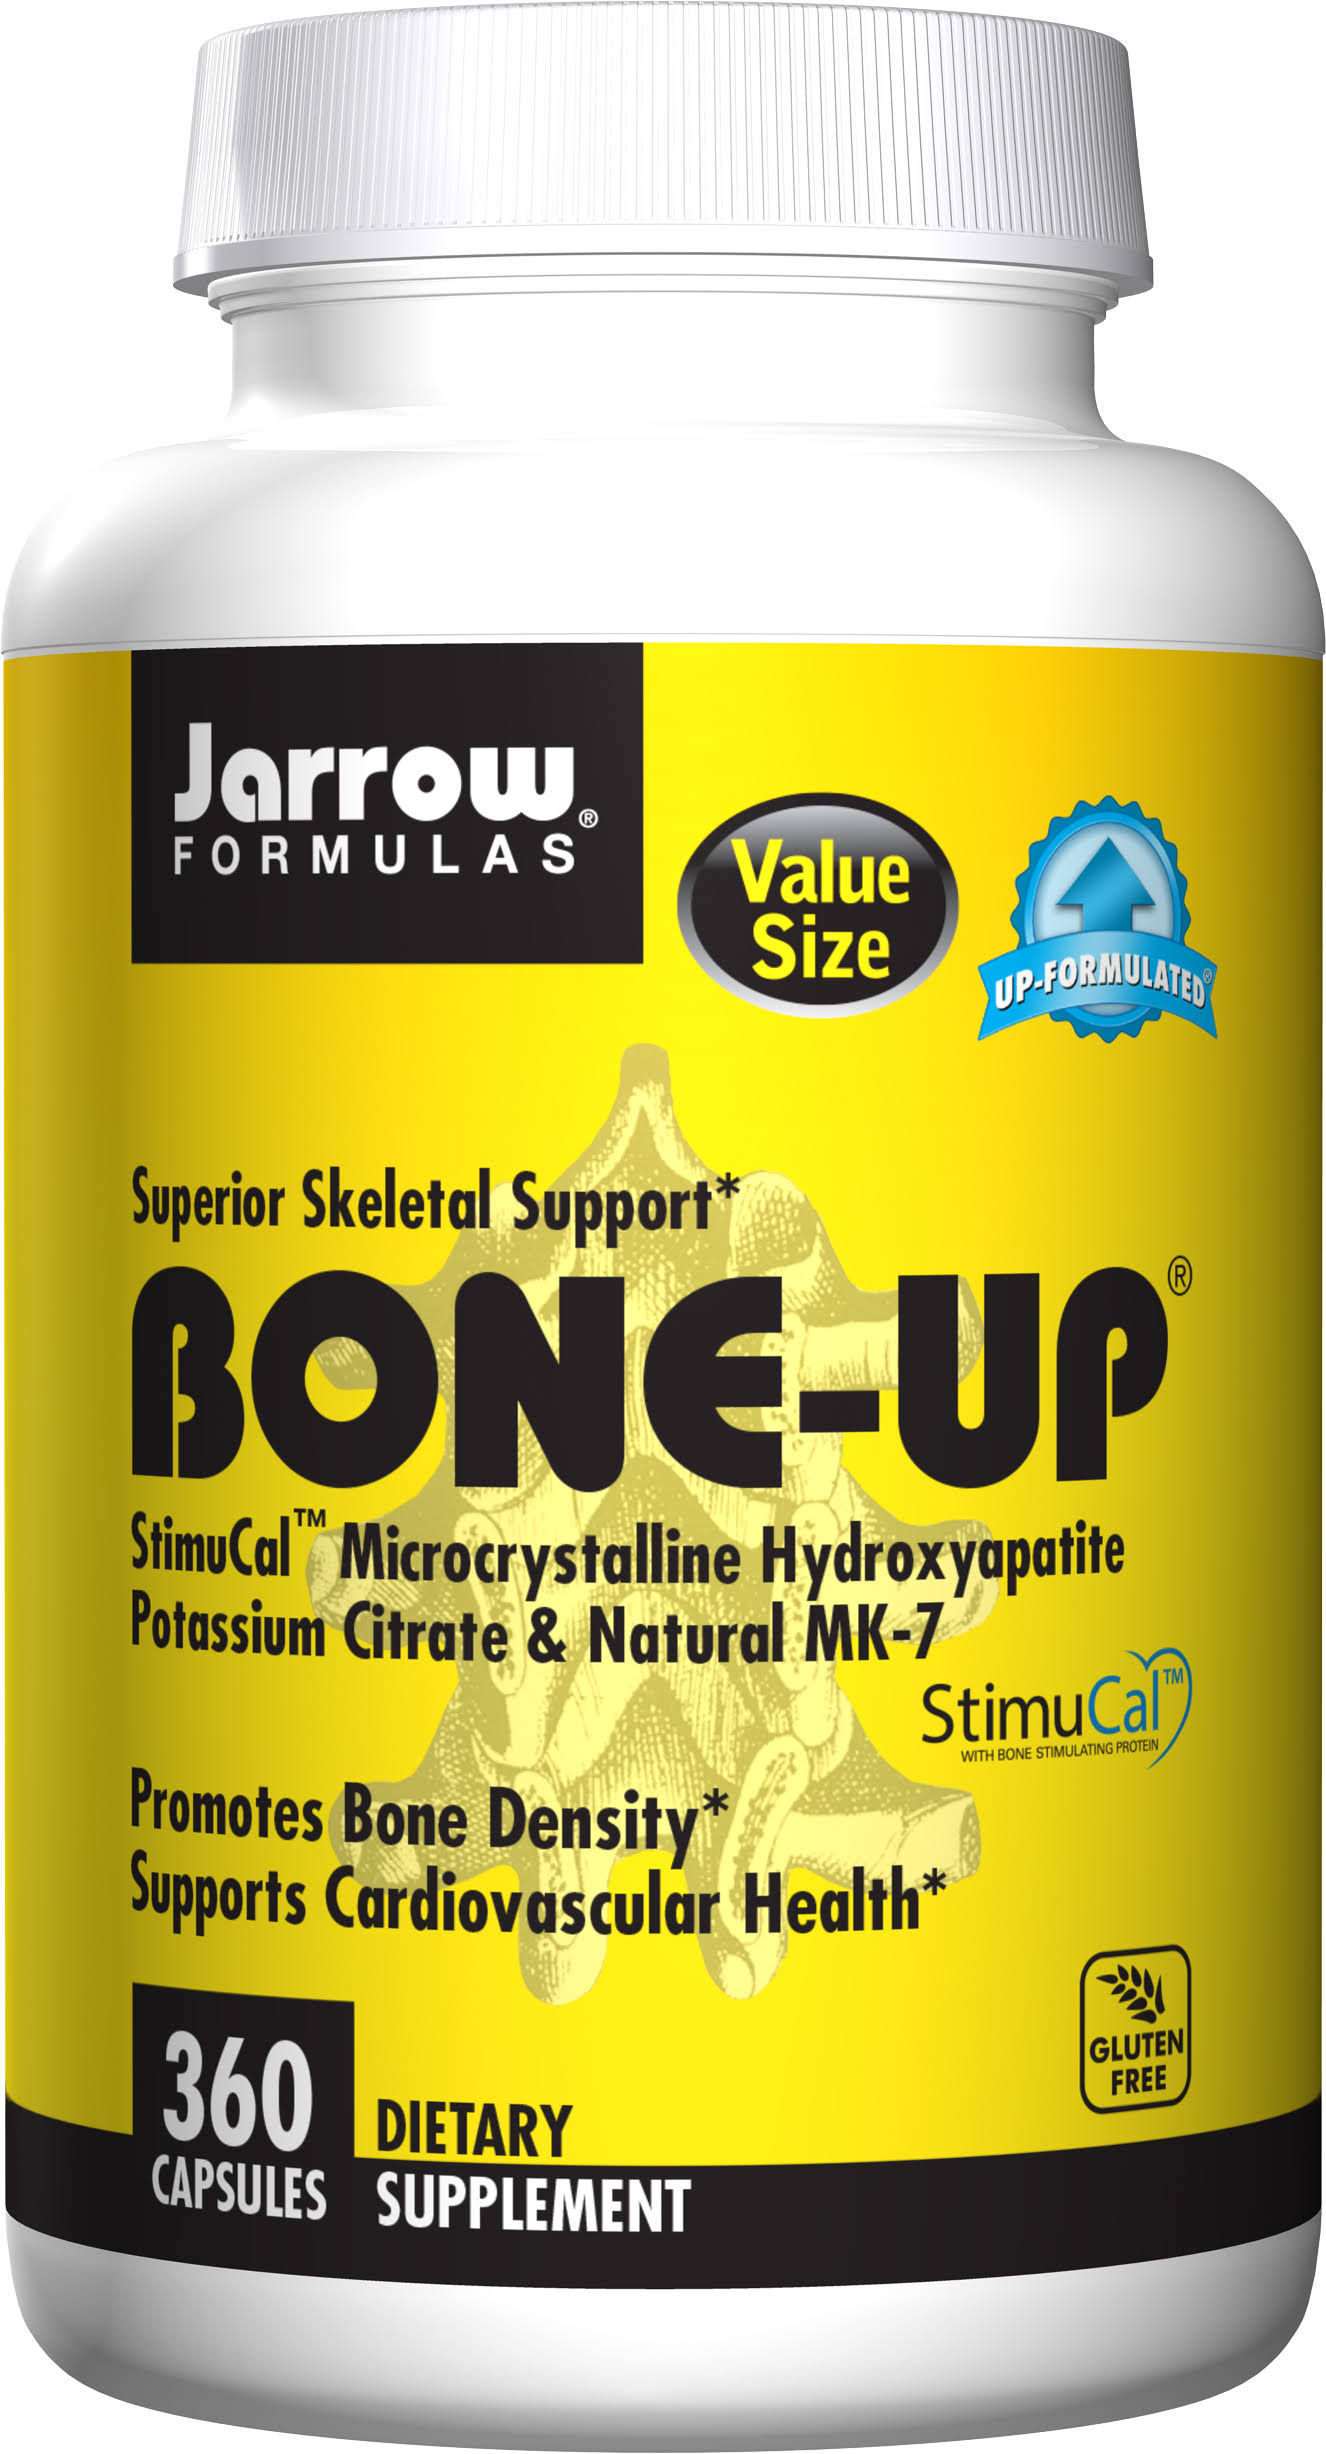 Jarrow Formulas Bone-Up Capsules - x360